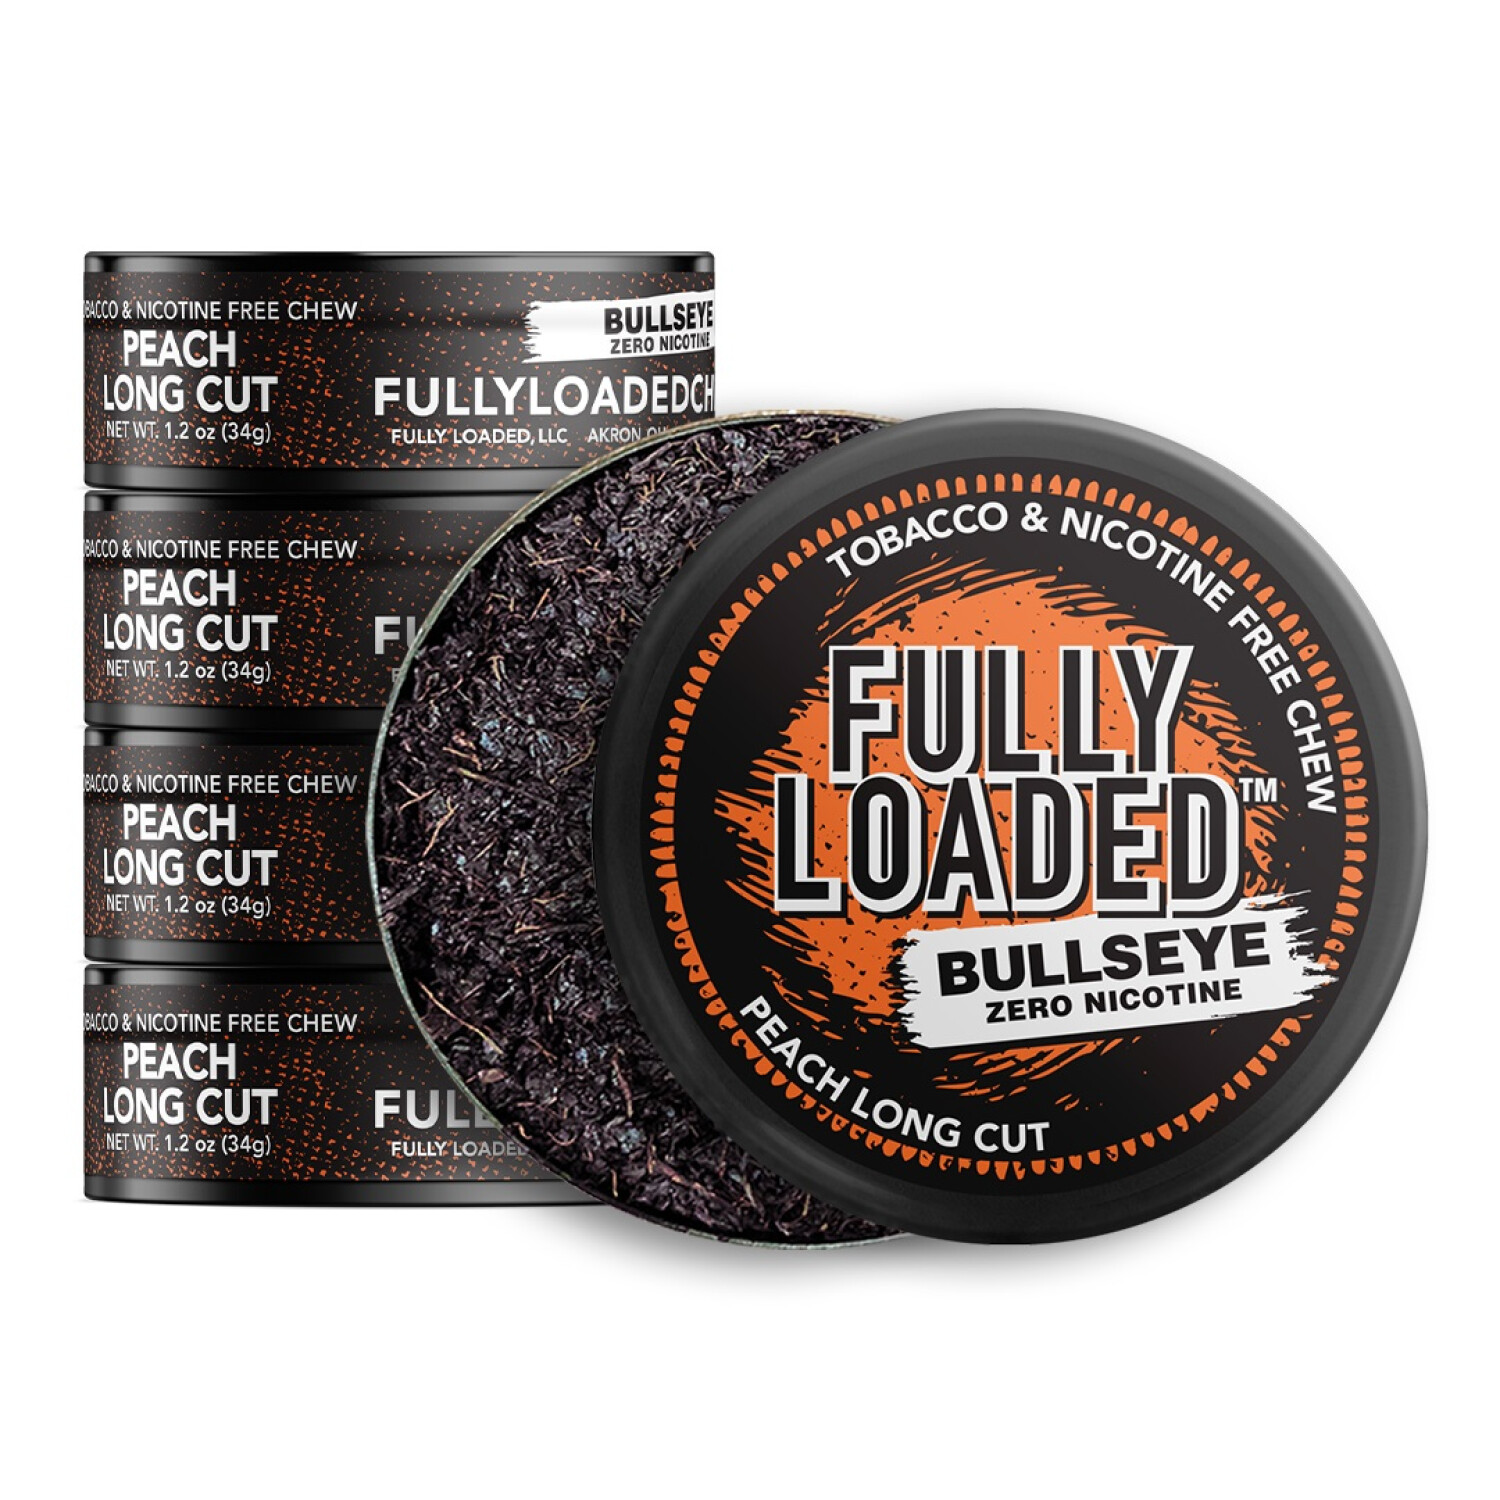 Fully Loaded Chew Tobacco and Nicotine Free Peach Bullseye Long Cut Sweet Flavor, Chewing Alternative-5 Cans